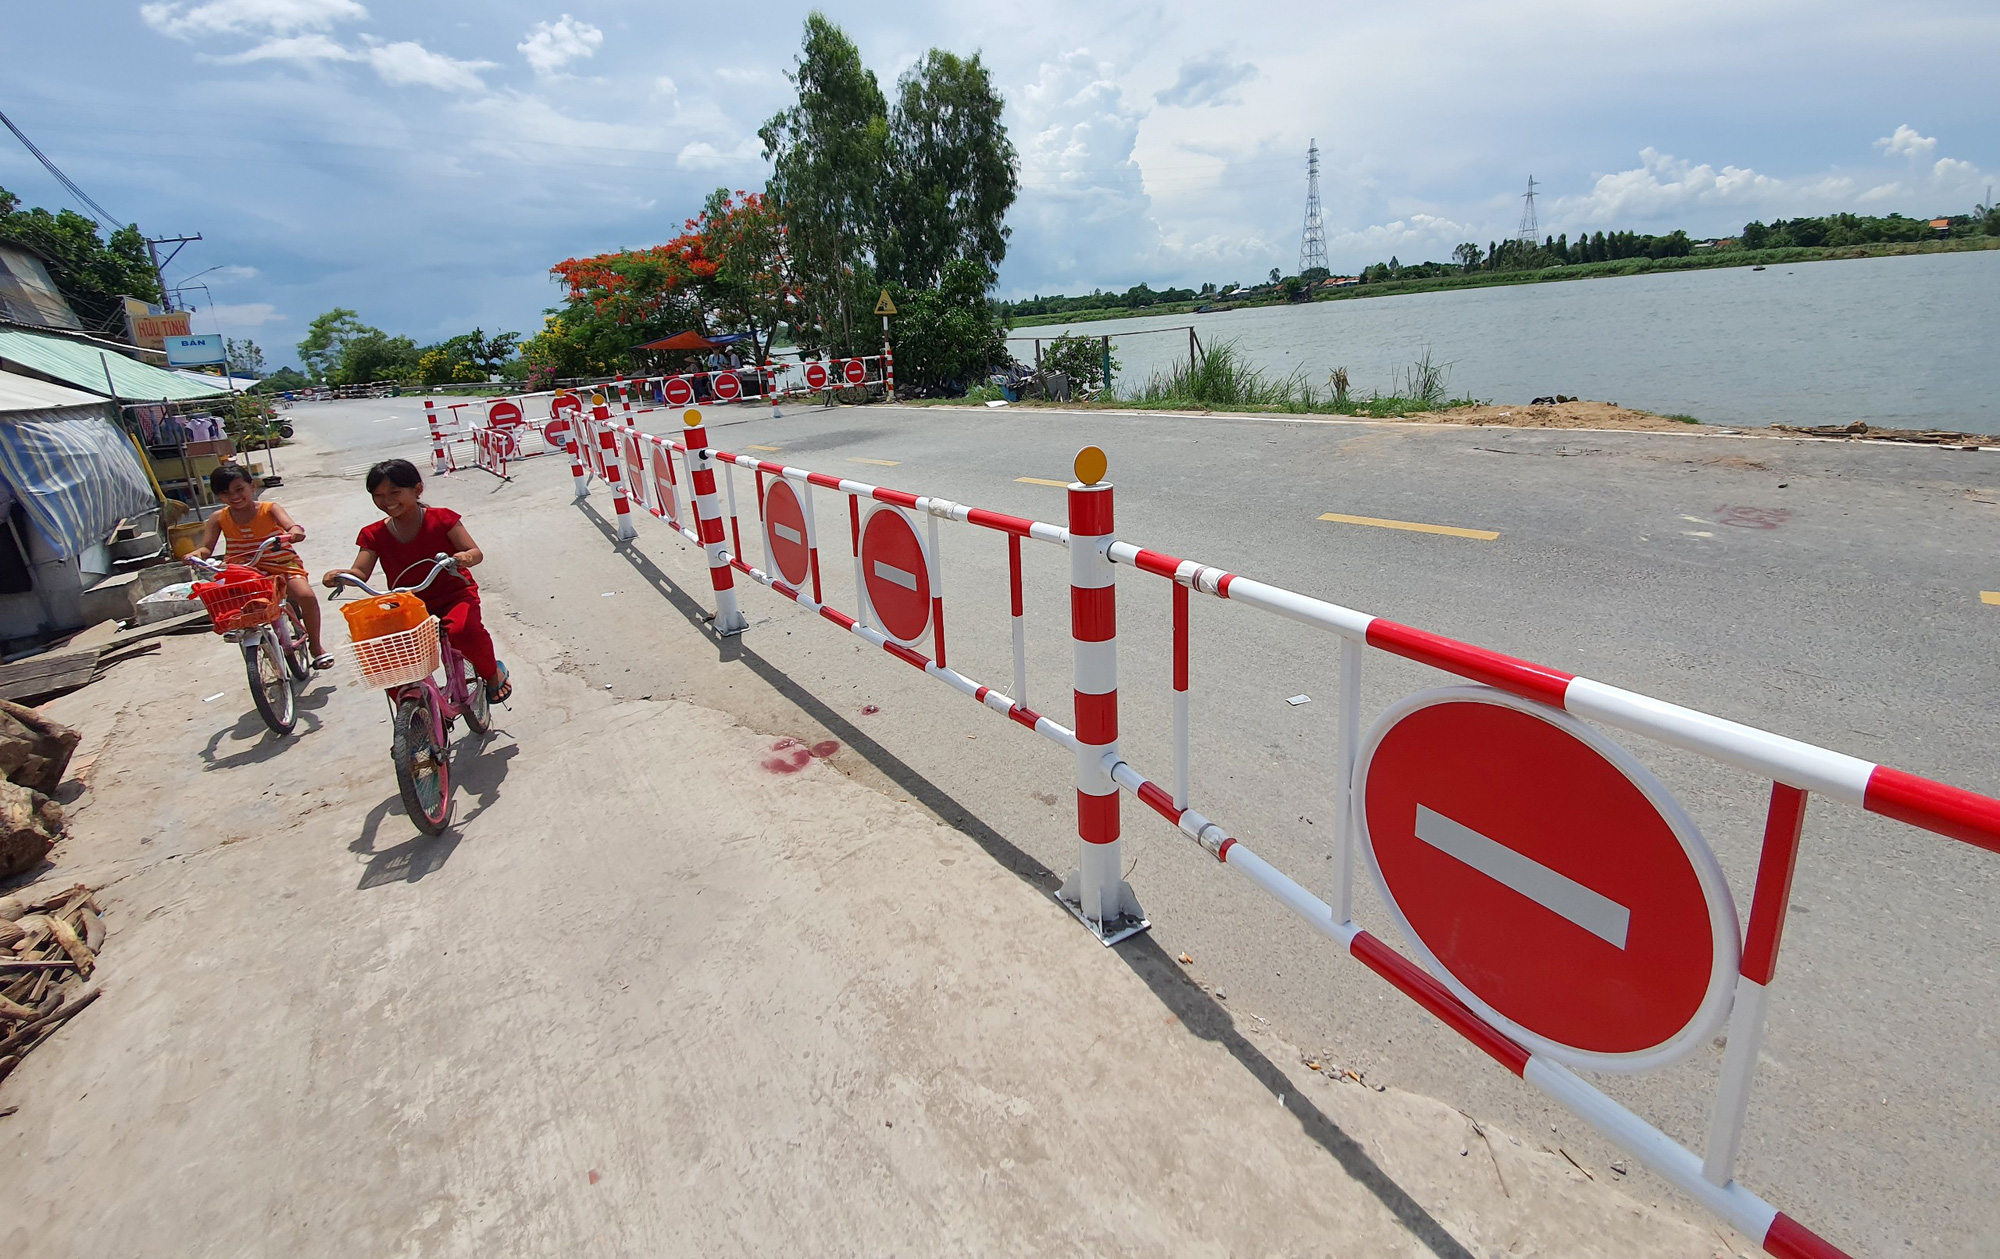 Parts of the provincial highway 91 in An Giang Province are fenced off due to high risk of subsidence. Photo: Chi Quoc / Tuoi Tre